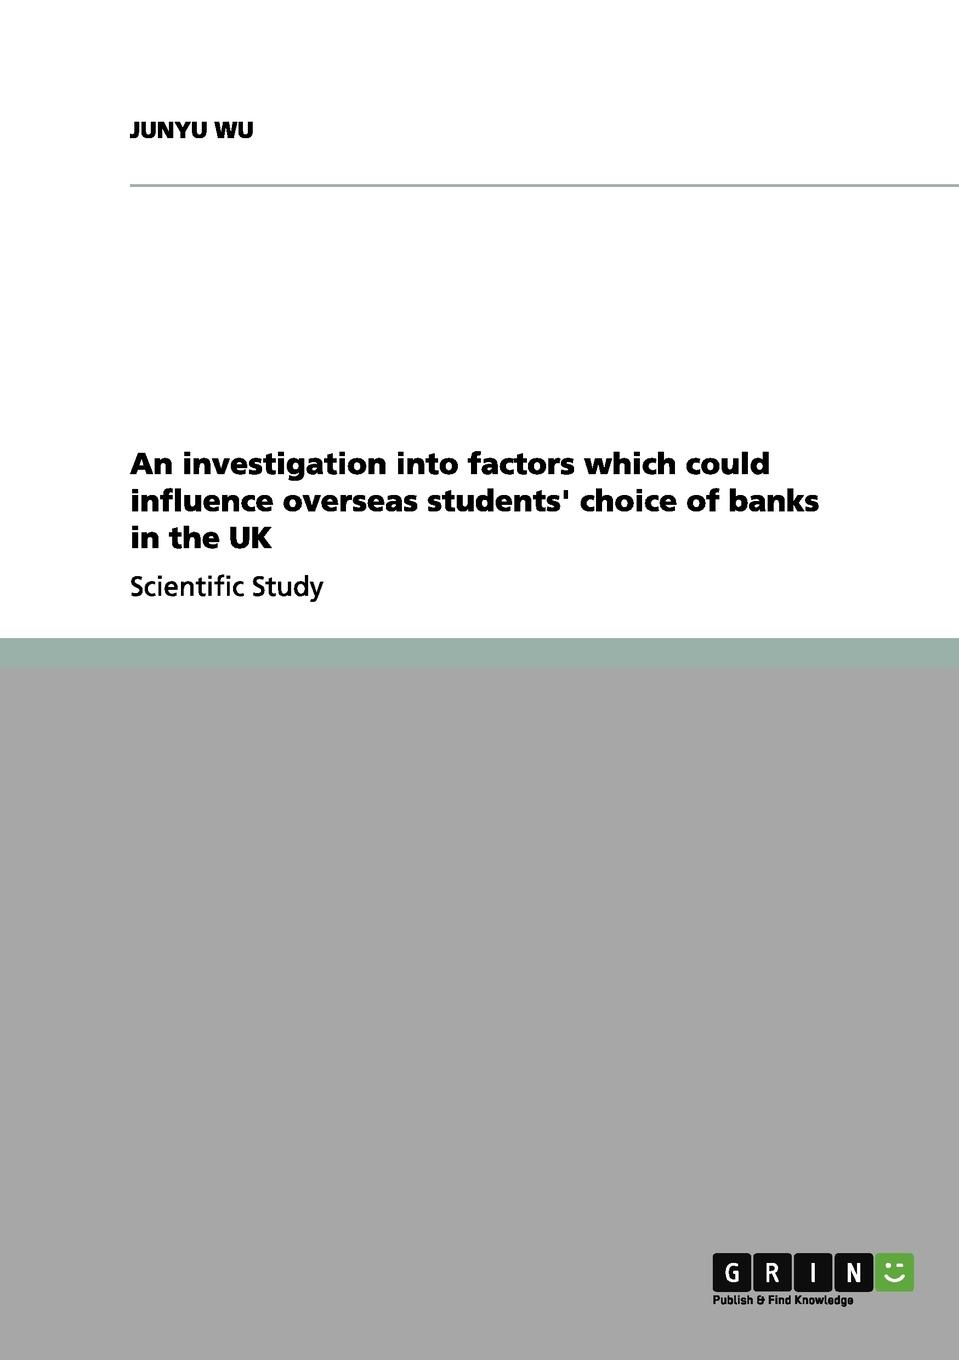 JUNYU WU An investigation into factors which could influence overseas students. choice of banks in the UK leanne banks underfoot